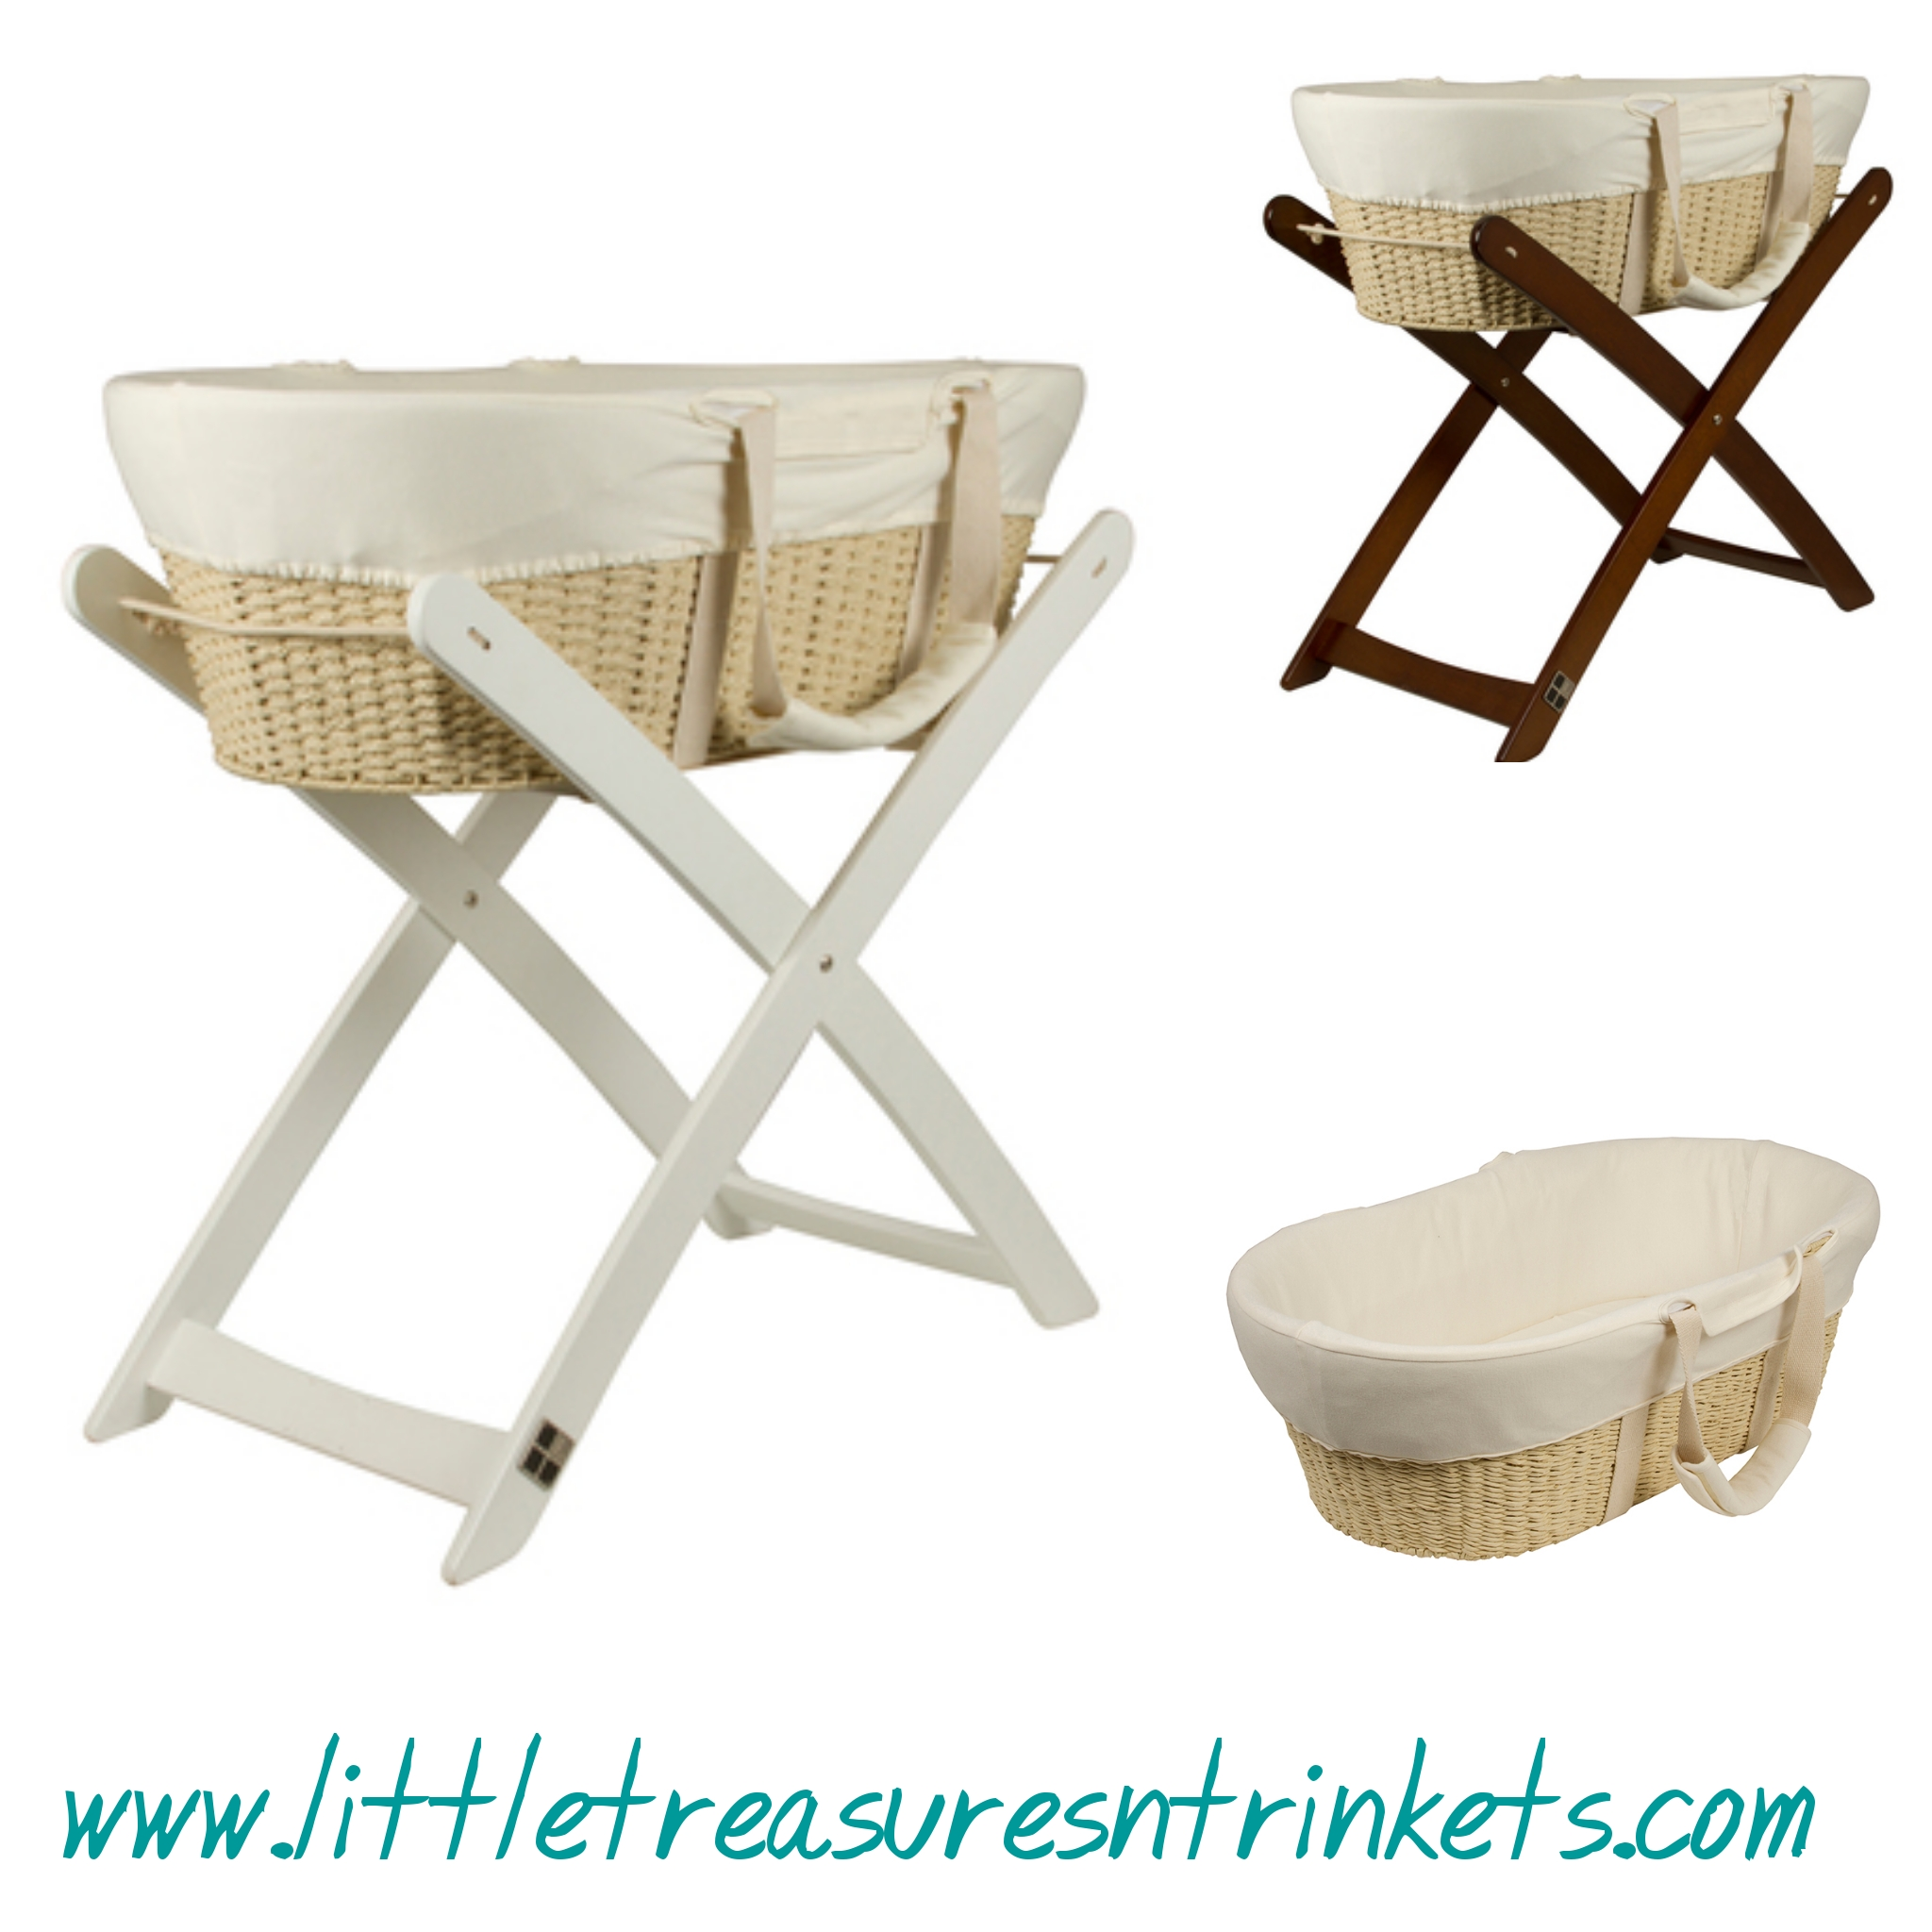 bebe moses basket optional stand little treasures n trinkets. Black Bedroom Furniture Sets. Home Design Ideas